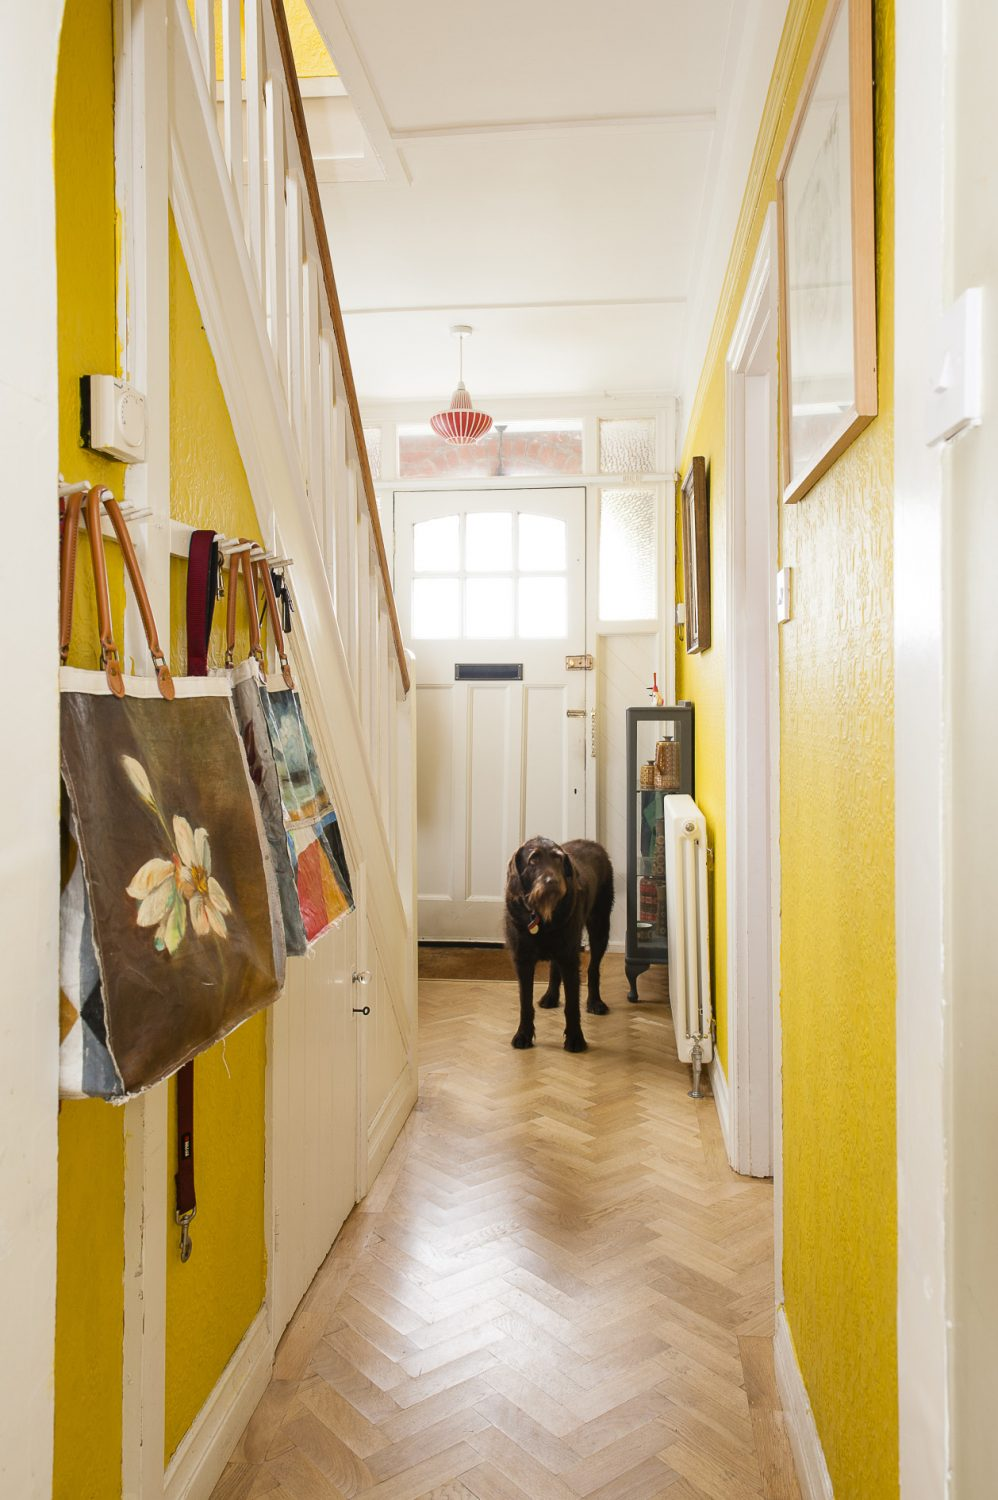 Hand-painted canvas bags from John and Anna's latest project hang from hooks in the hallway